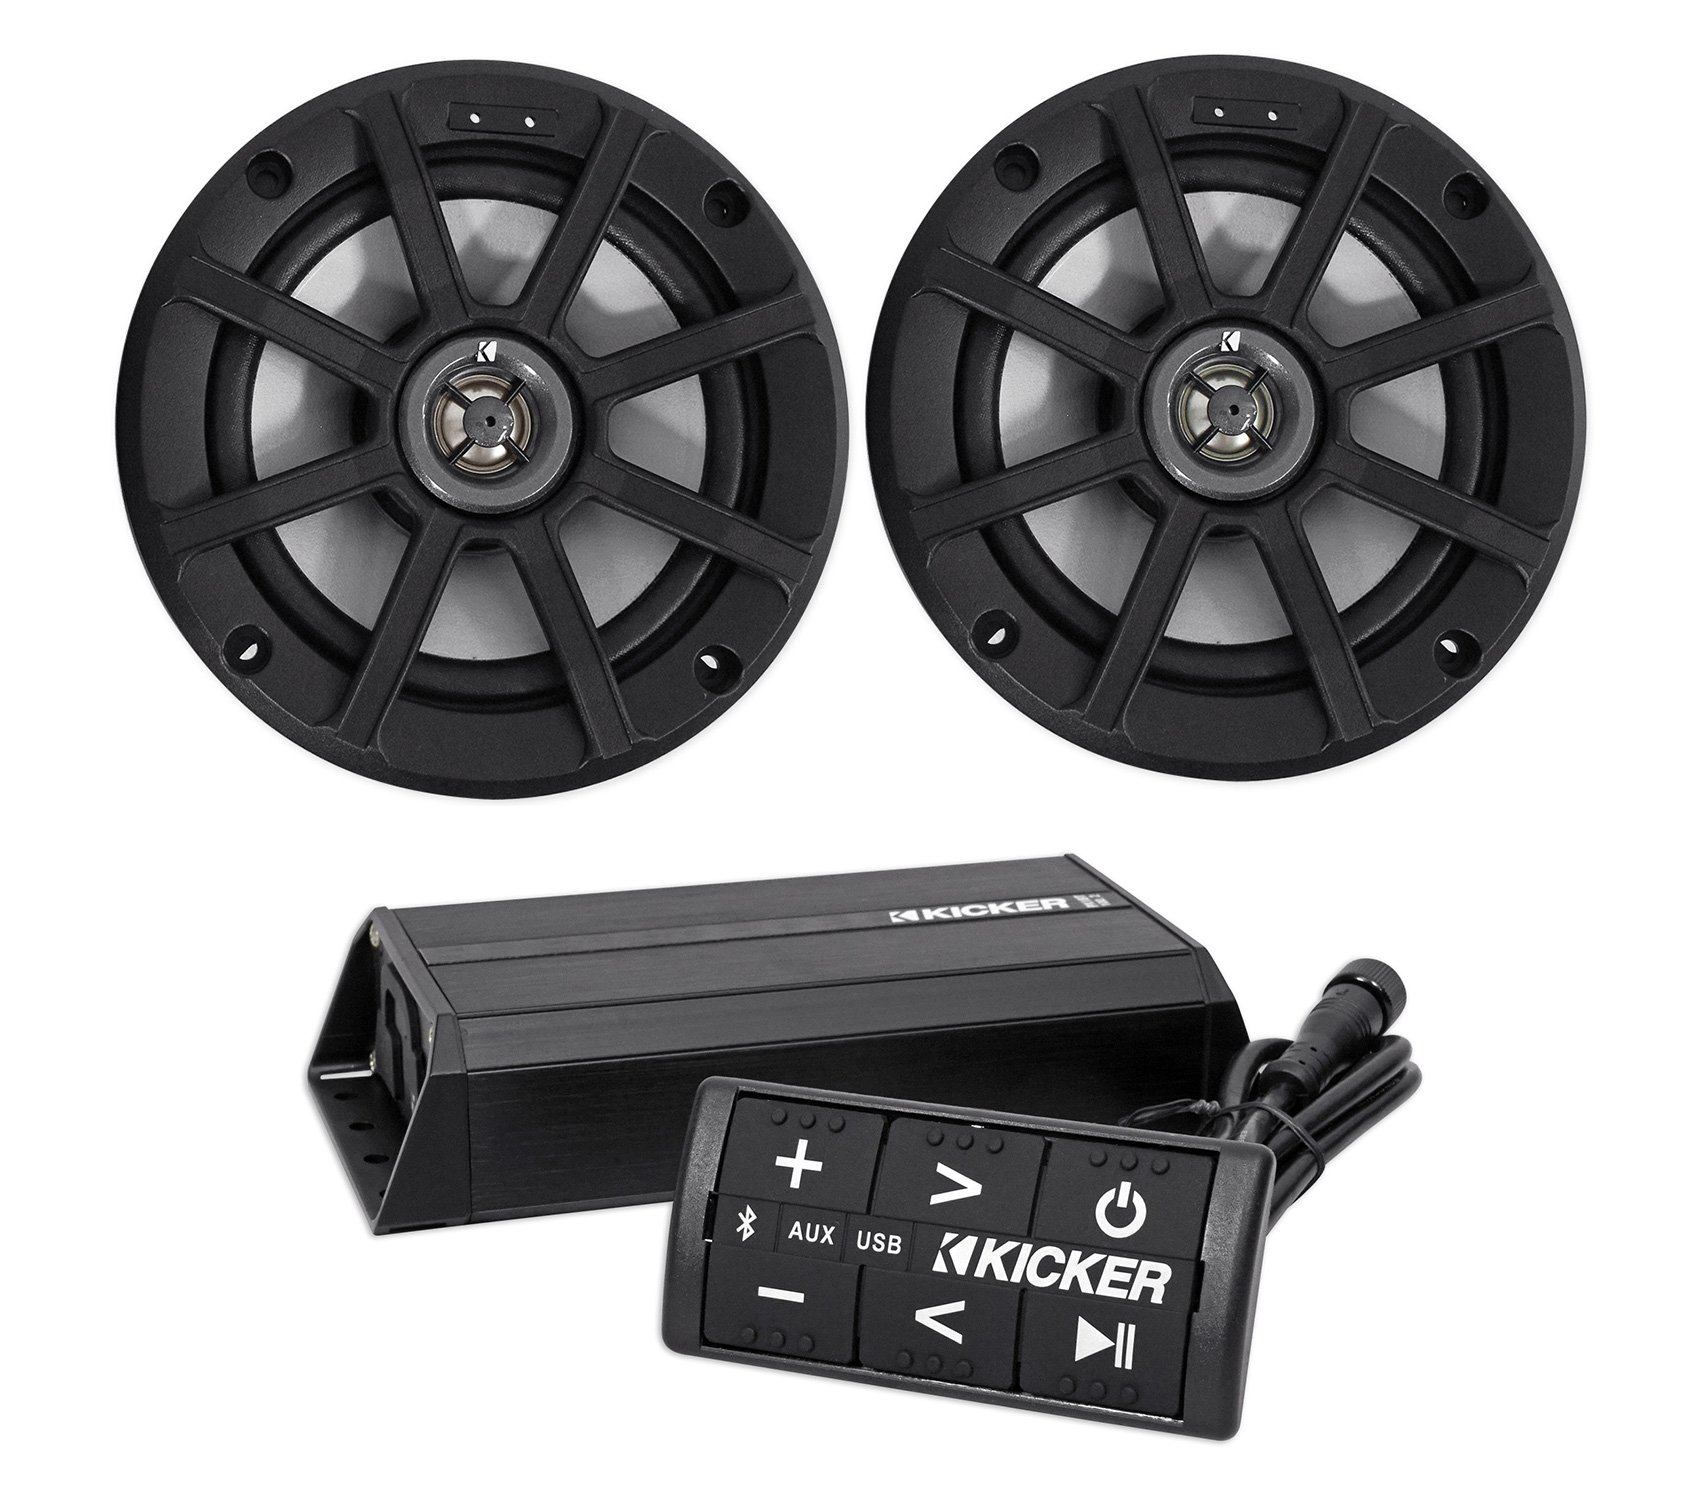 2) Kicker 42PSC652 6.5'' Motorcycle/ATV/UTV/RZR Speakers+Bluetooth Amp+Controller by Kicker